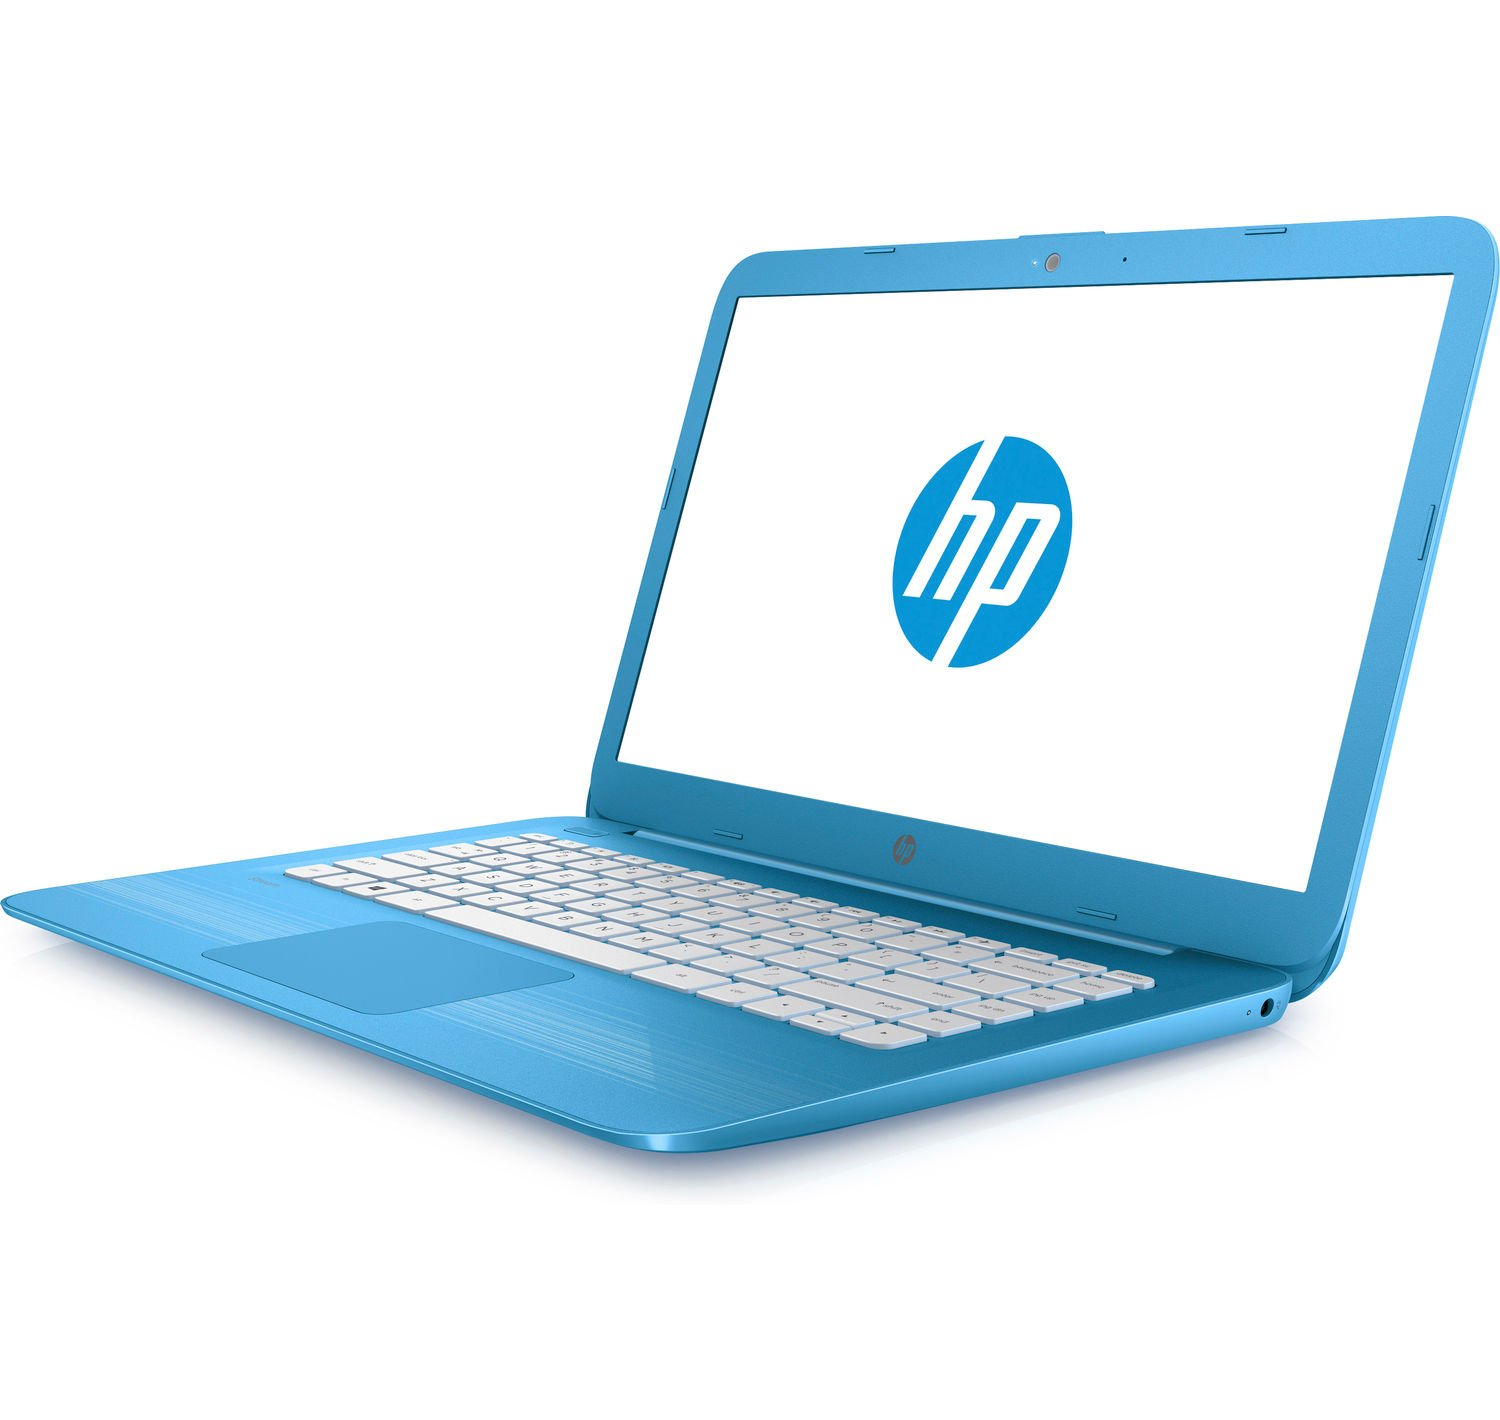 HP Stream 14in Laptop, Intel Celeron N3060, 4GB RAM, 32GB Solid State Drive with Windows 10 (14-ax010ca) - Aqua Blue (Renewed)